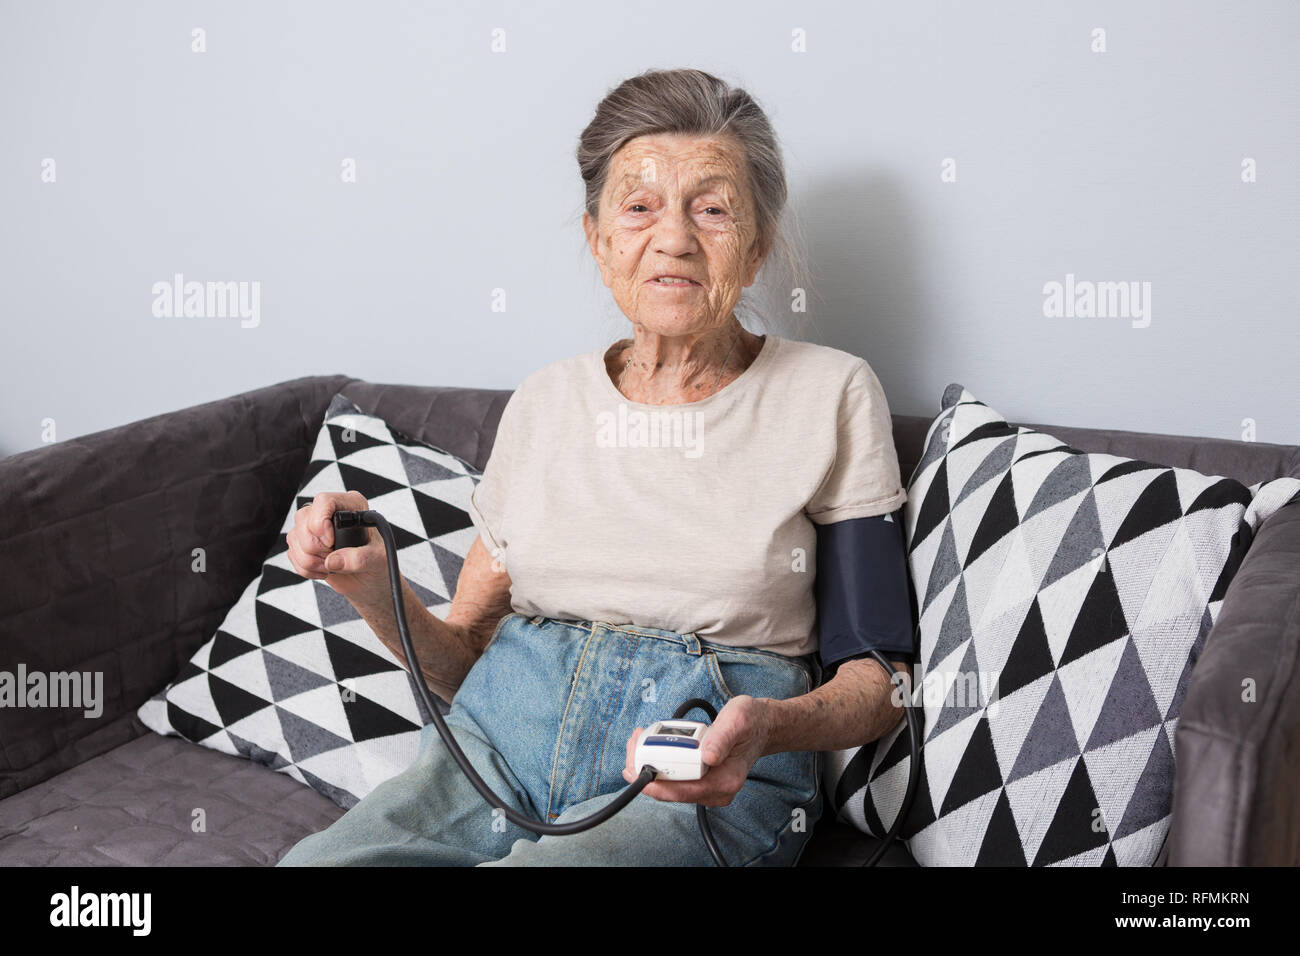 The topic is very old person and health problems. A senior Caucasian woman, 90 years old, with wrinkles and gray hair, sits home on sofa and uses bloo - Stock Image